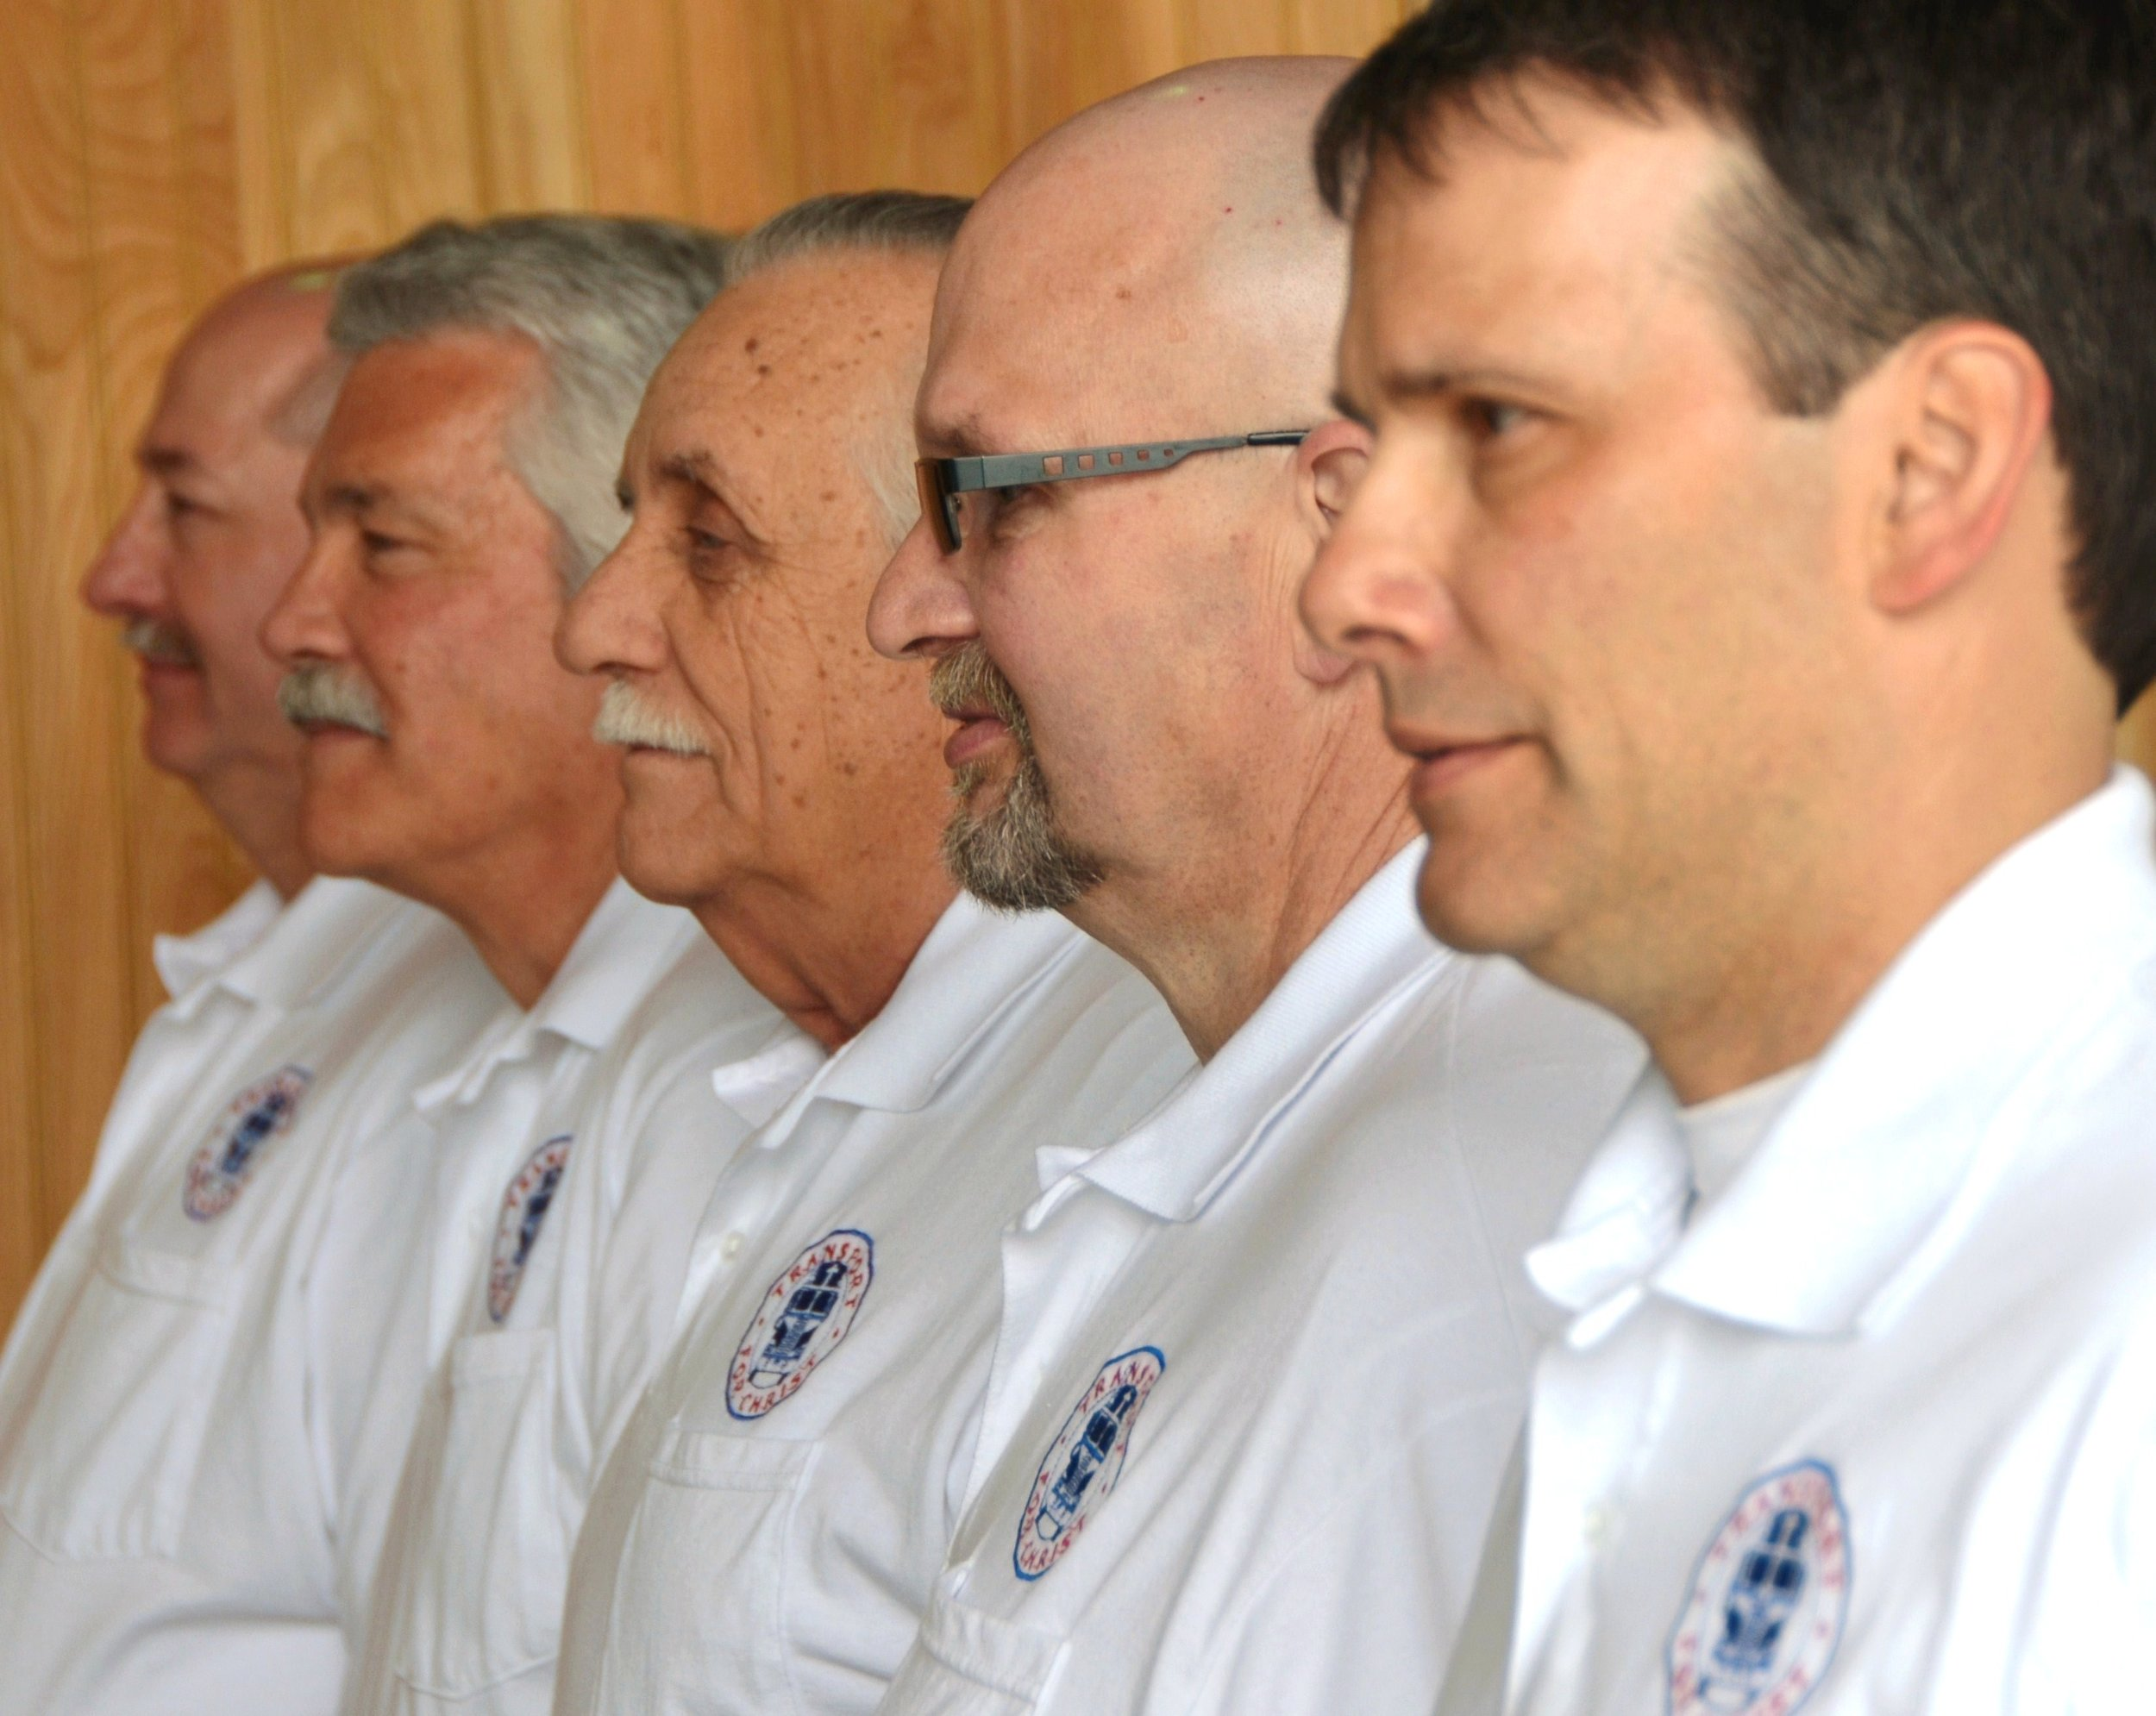 group of chaplains.jpg